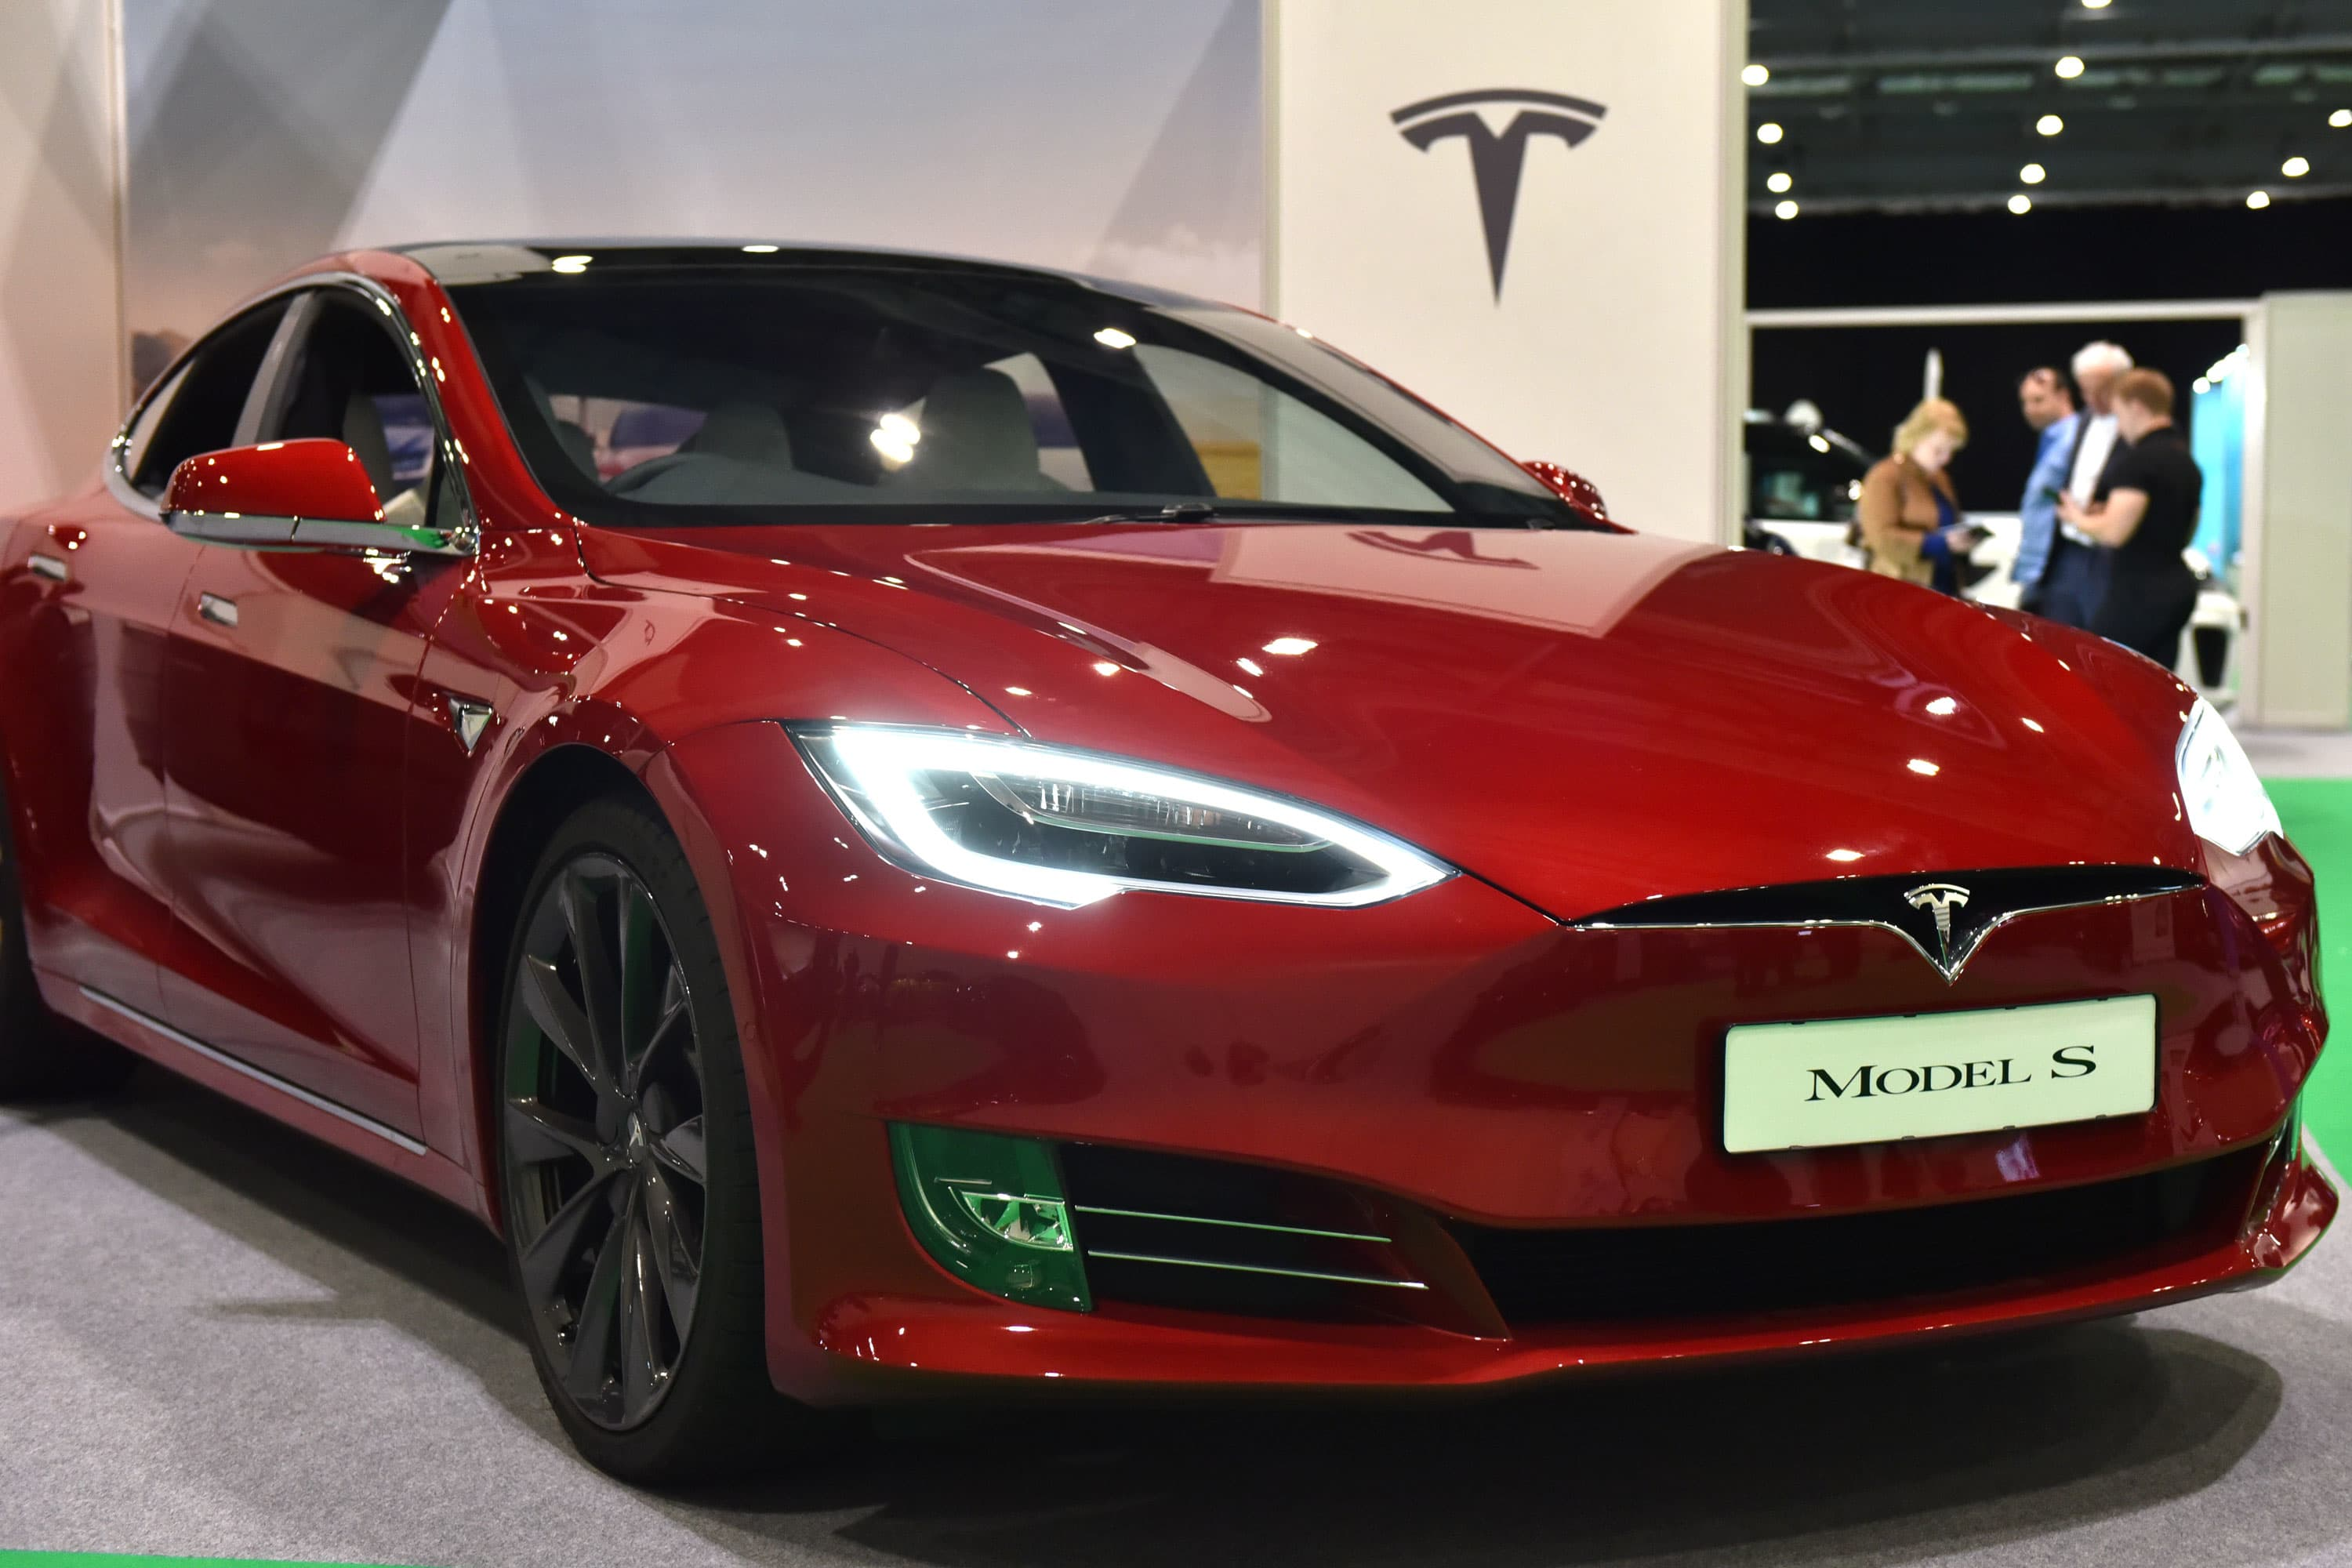 Tesla On Part-Automated Drive System Slams Into Police Car in Orlando